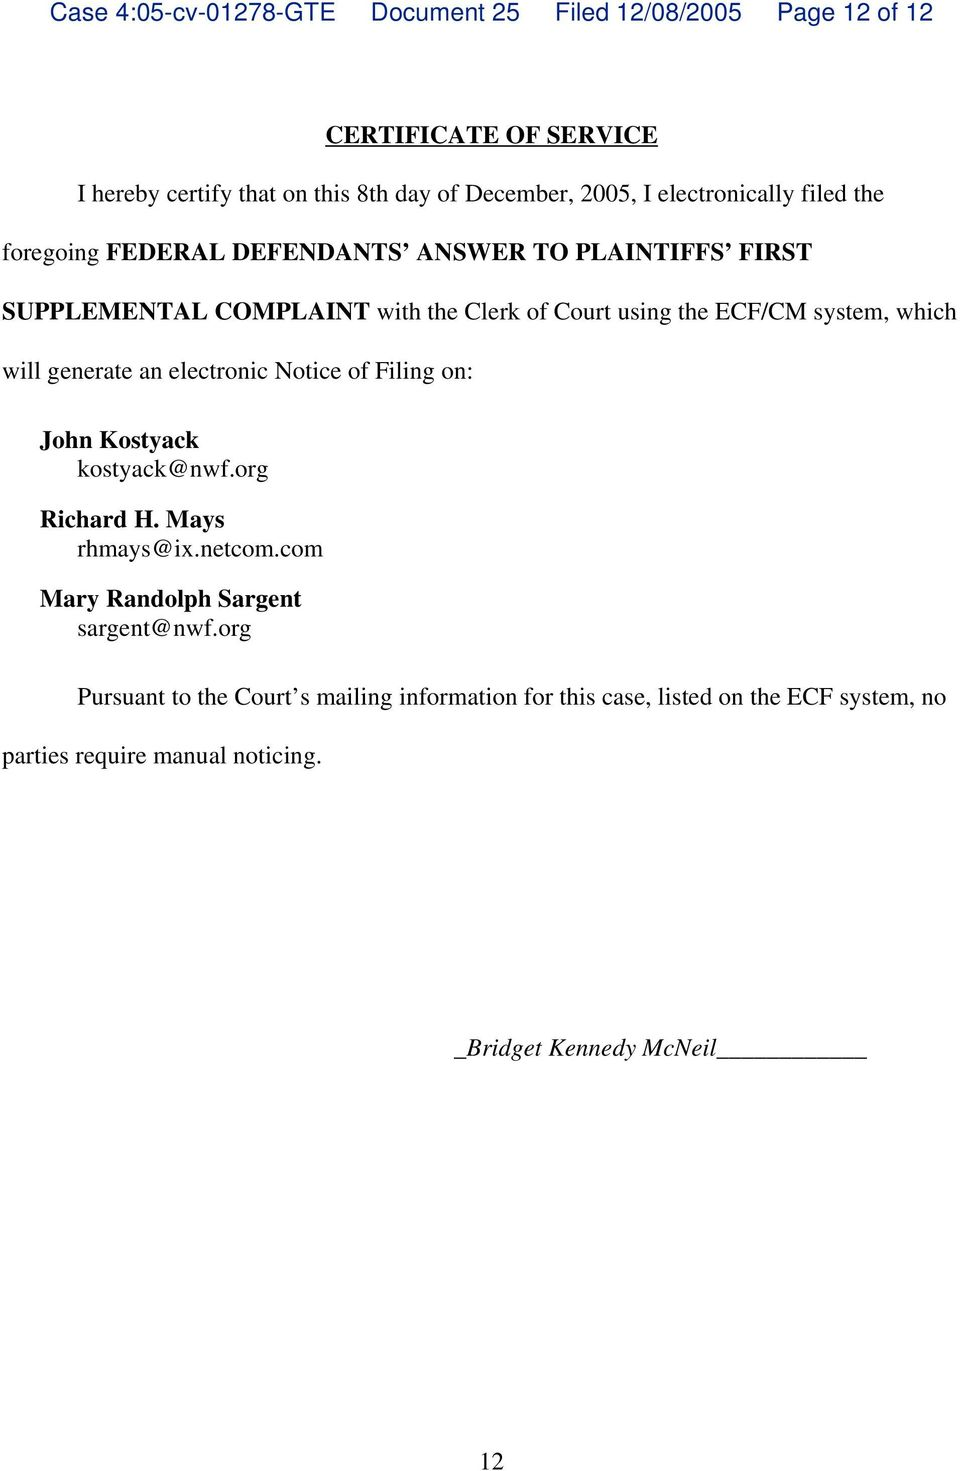 which will generate an electronic Notice of Filing on: John Kostyack kostyack@nwf.org Richard H. Mays rhmays@ix.netcom.